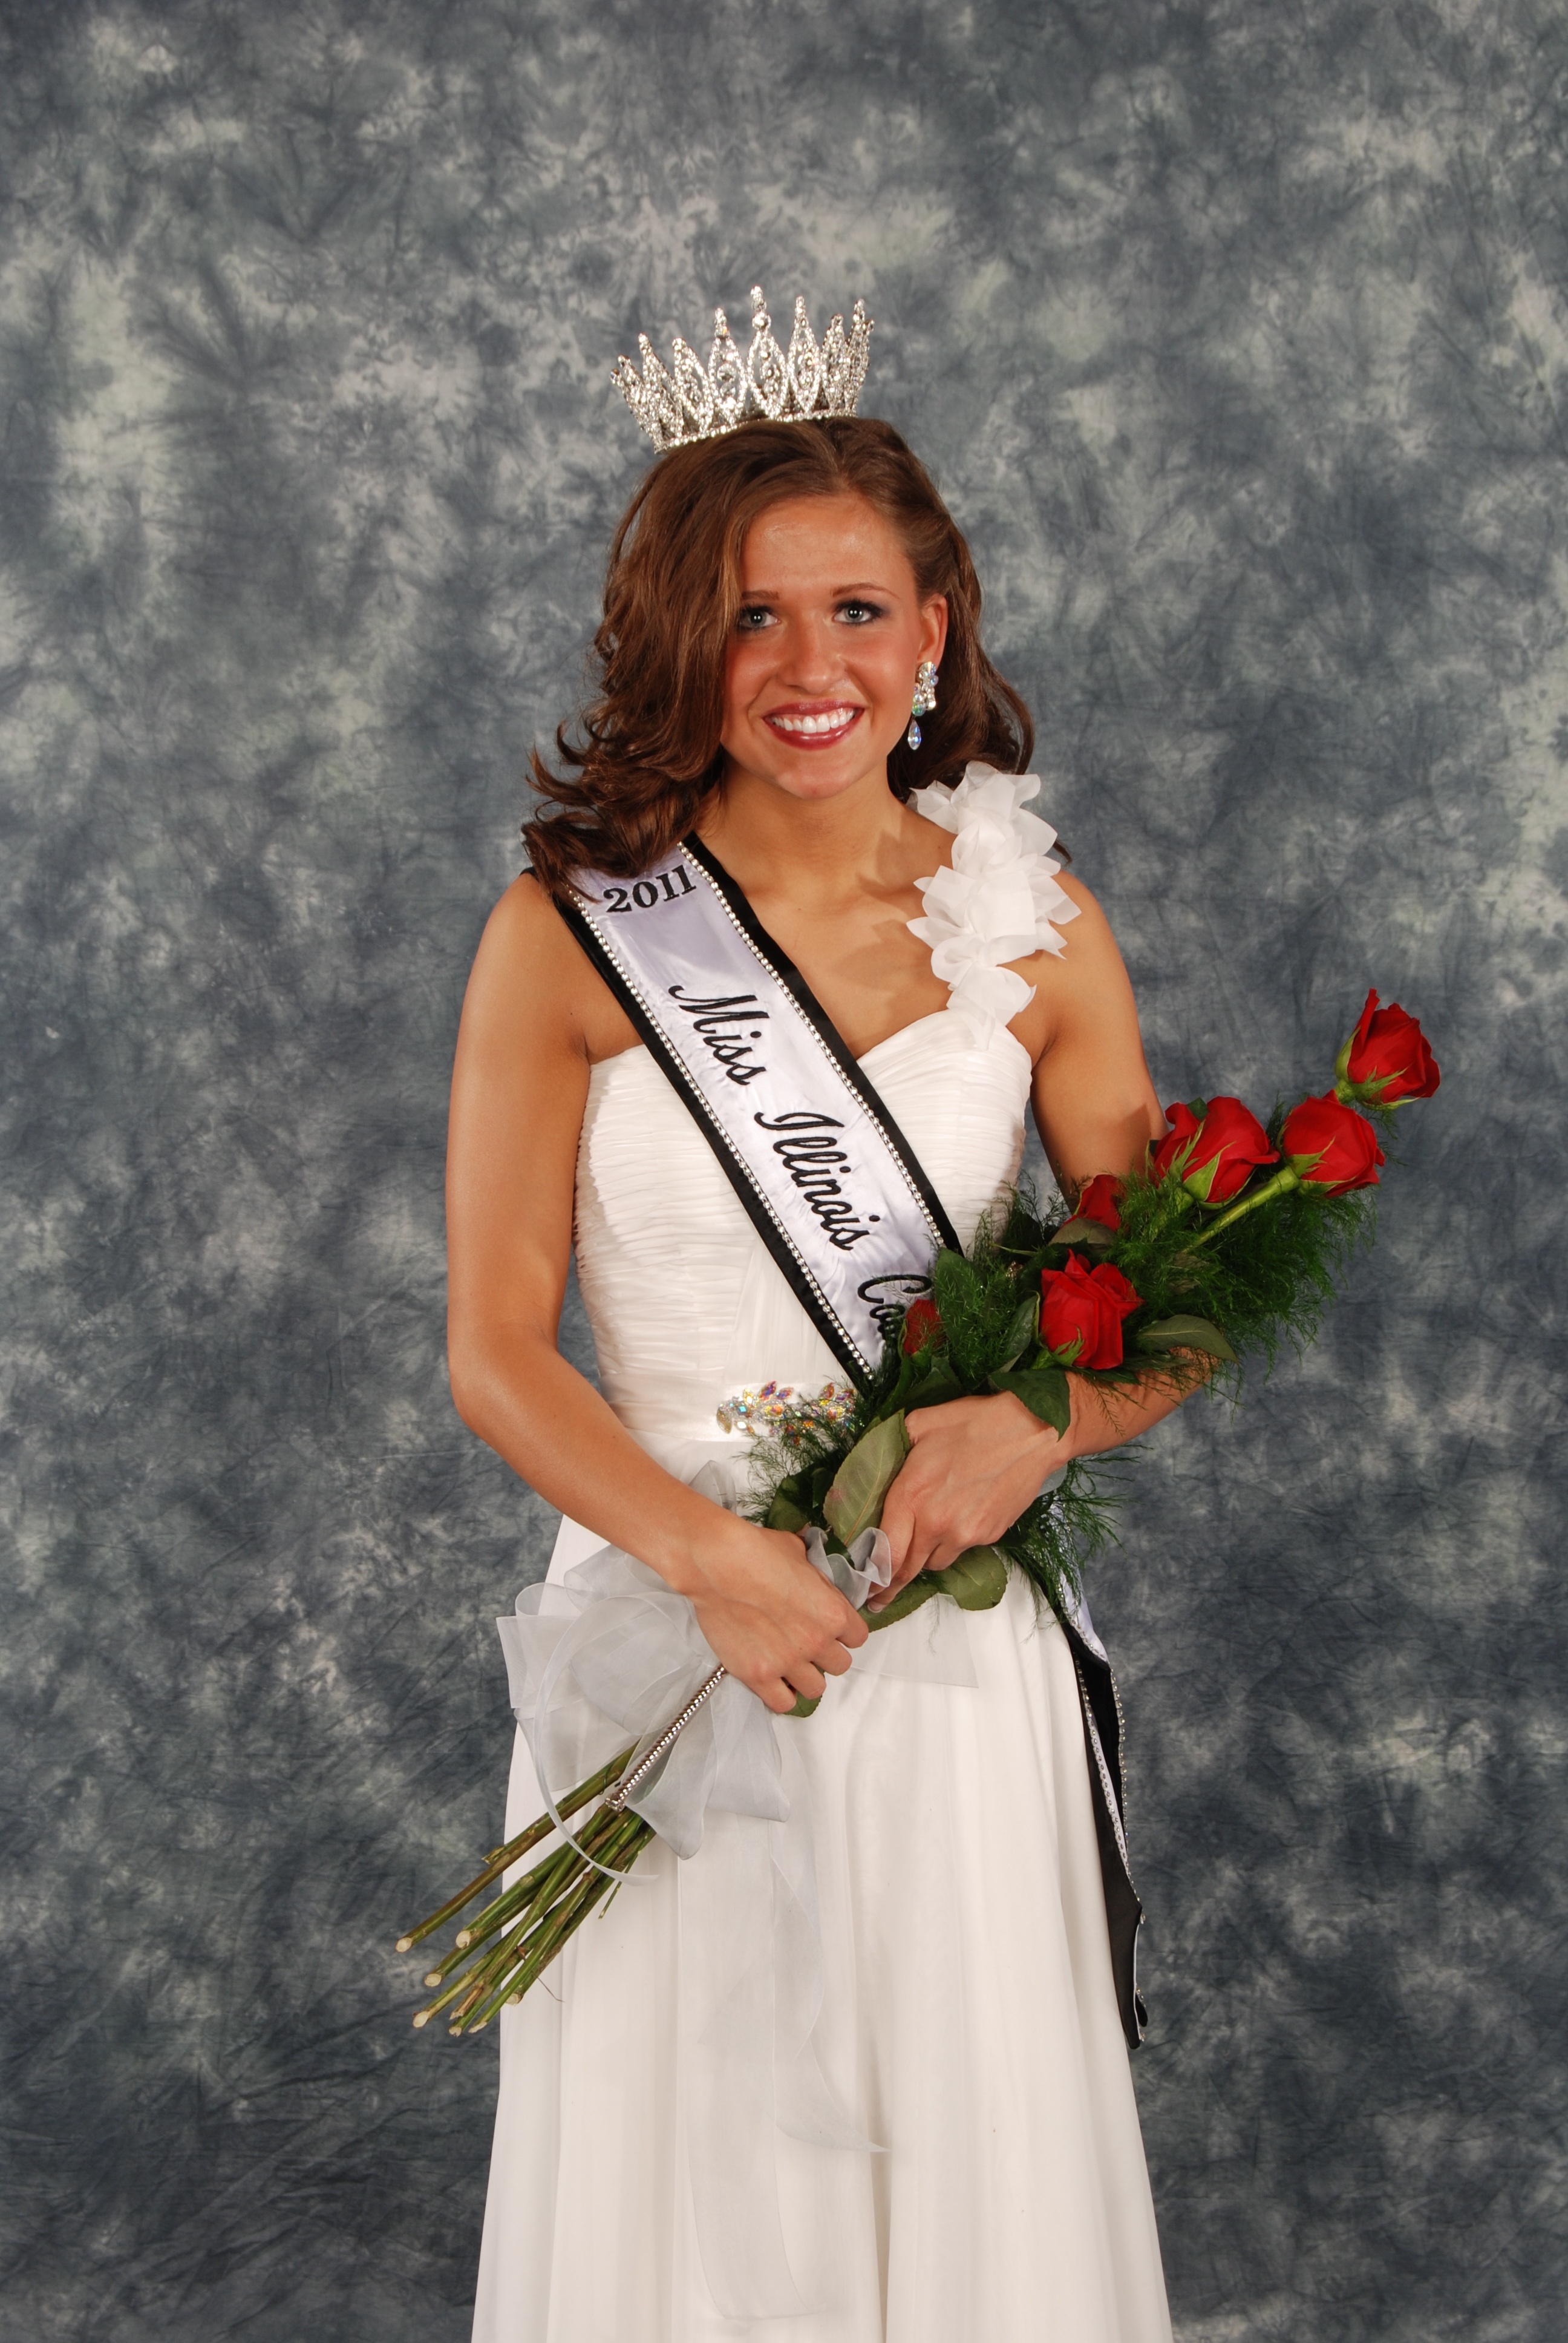 Miss missouri state fair pageant - The 2011 Miss Illinois County Fair Queen